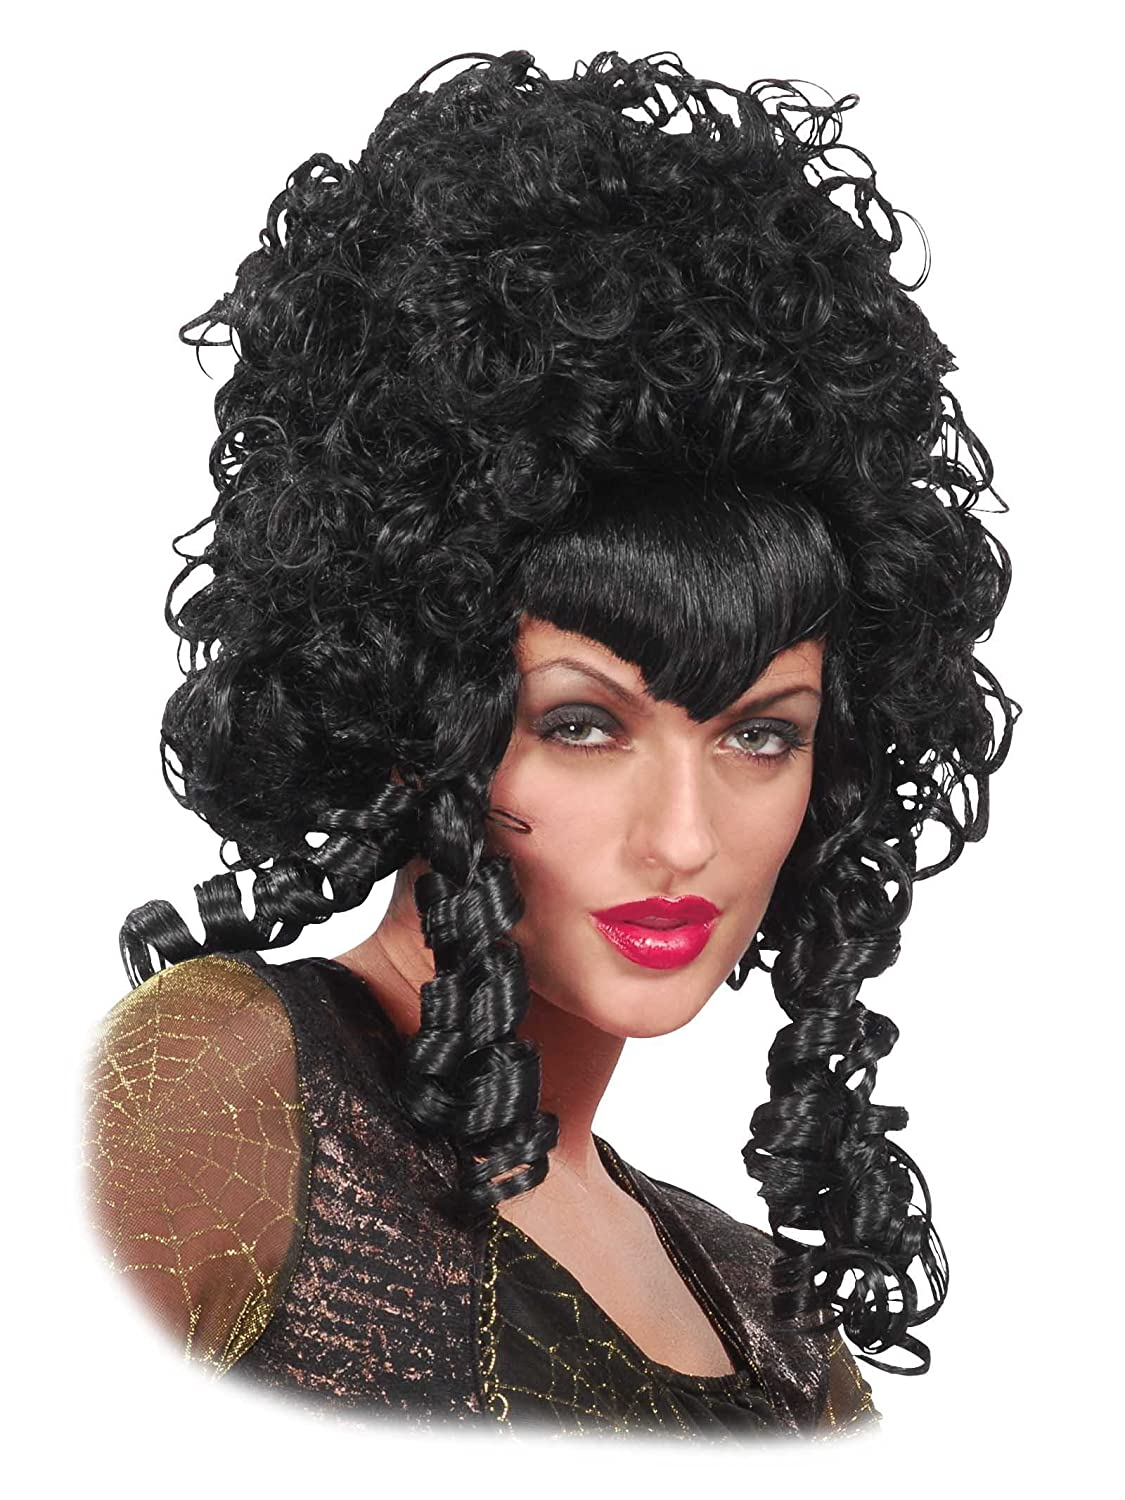 Download image 1700s woman portrait pc android iphone and ipad - Amazon Com Curly Long Black Wig Big Hair Mess Poofy Widows Peak Womens Theatrical Costume Clothing